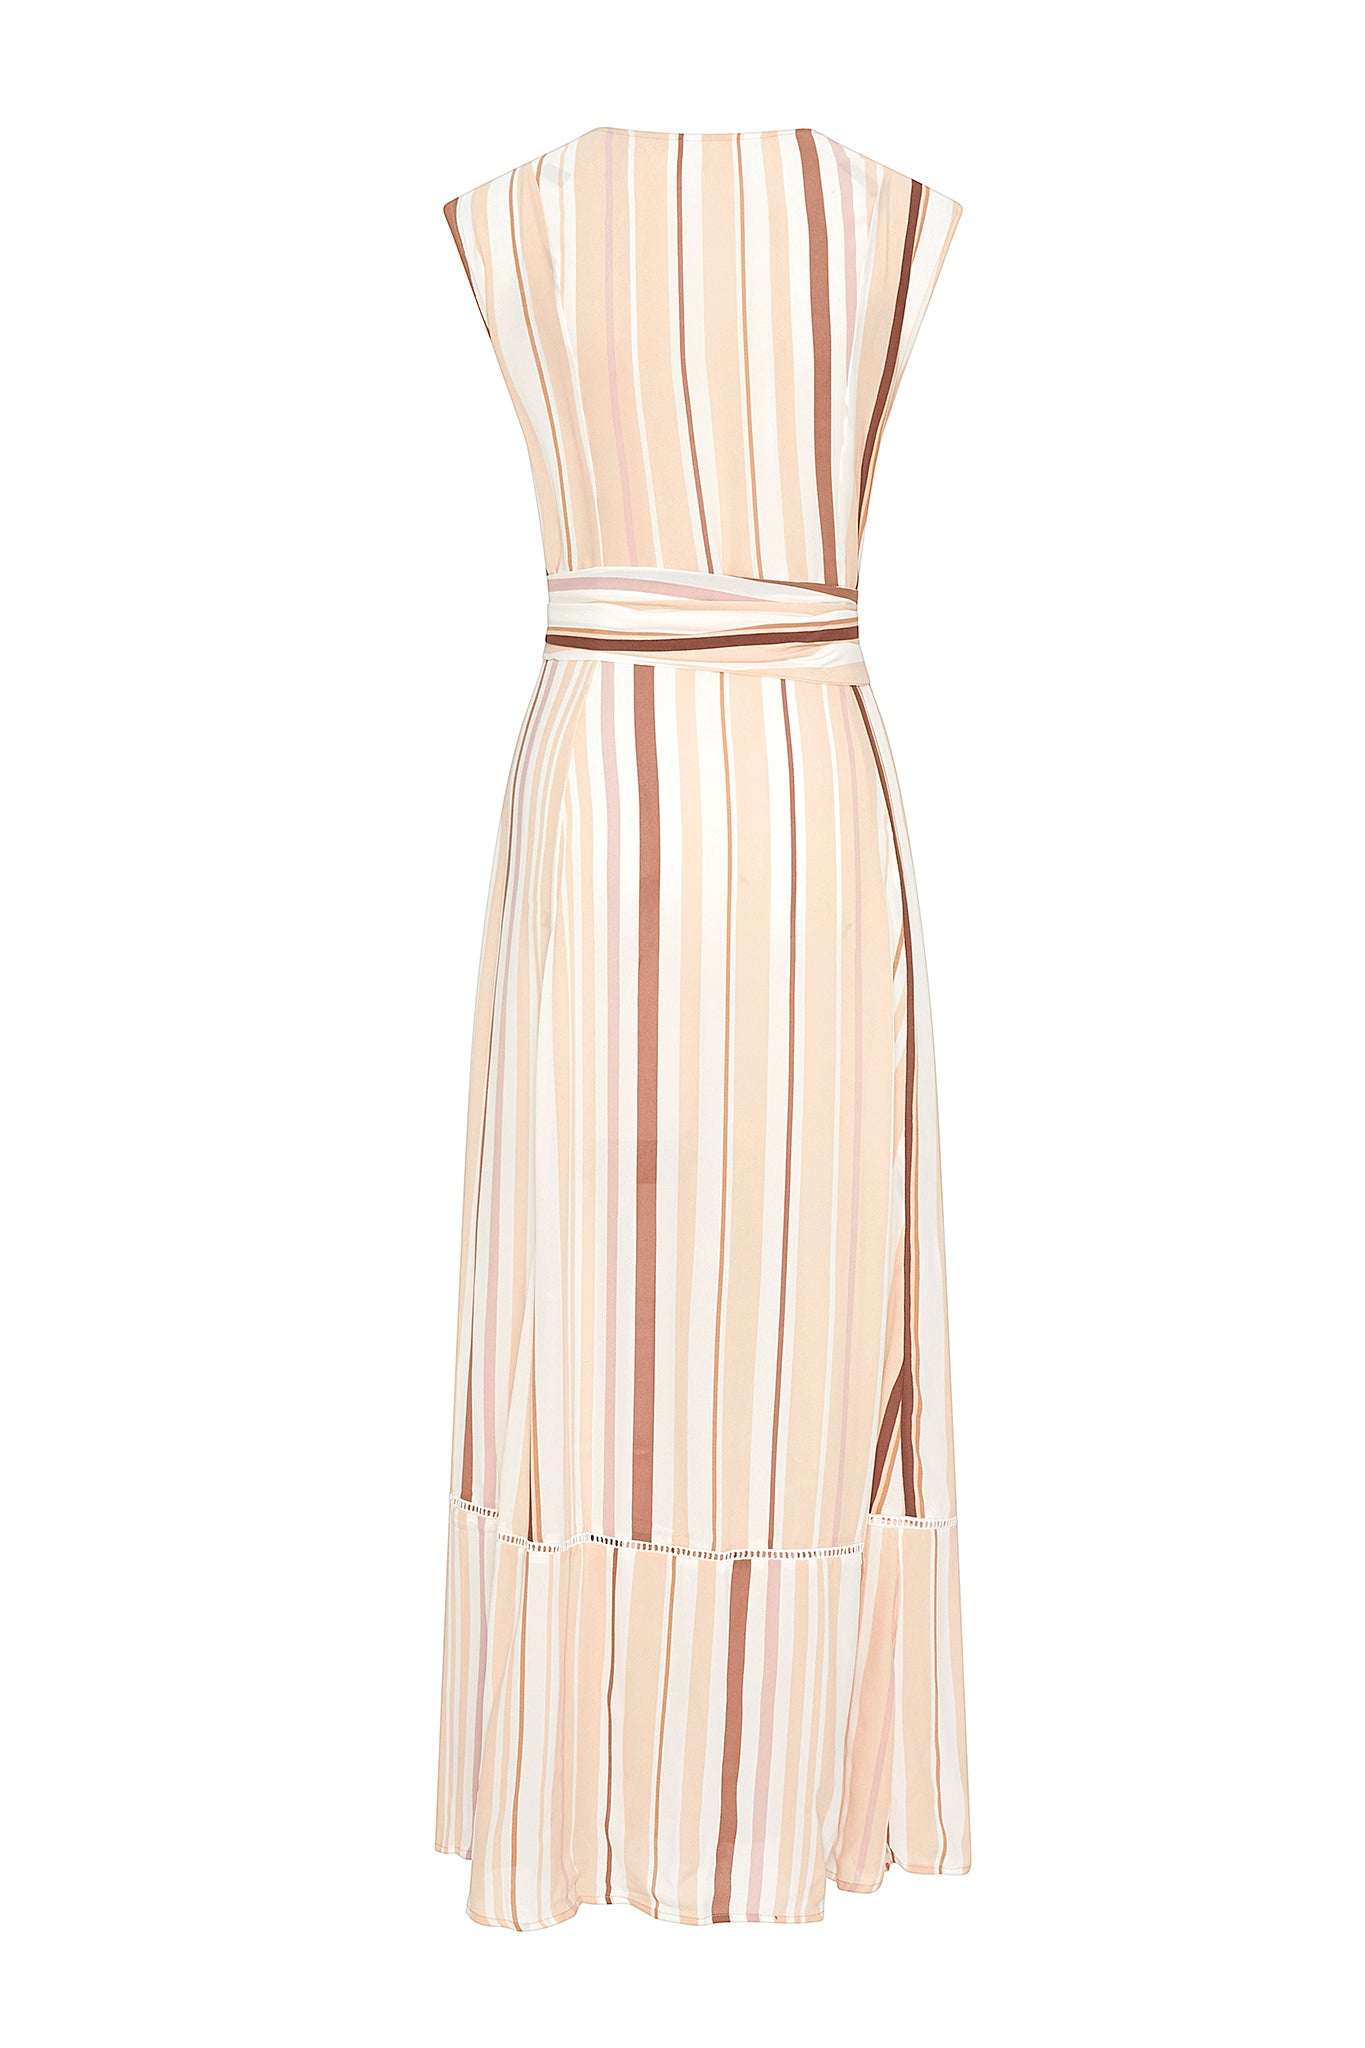 Audrey Sleeveless Duster - Tan Stripe